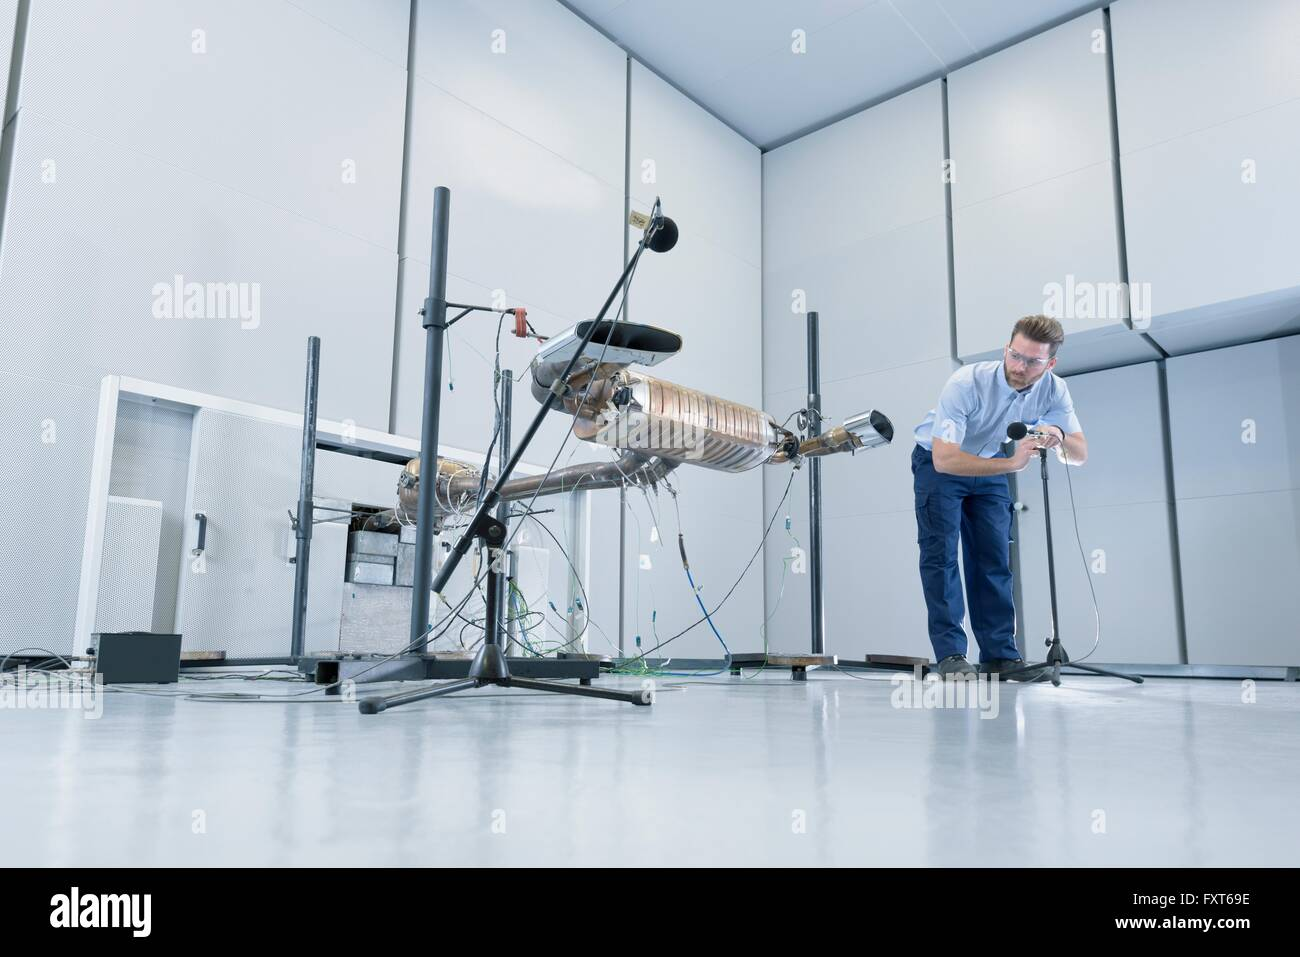 Engineer testing vehicle exhaust system in anechoic chamber - Stock Image